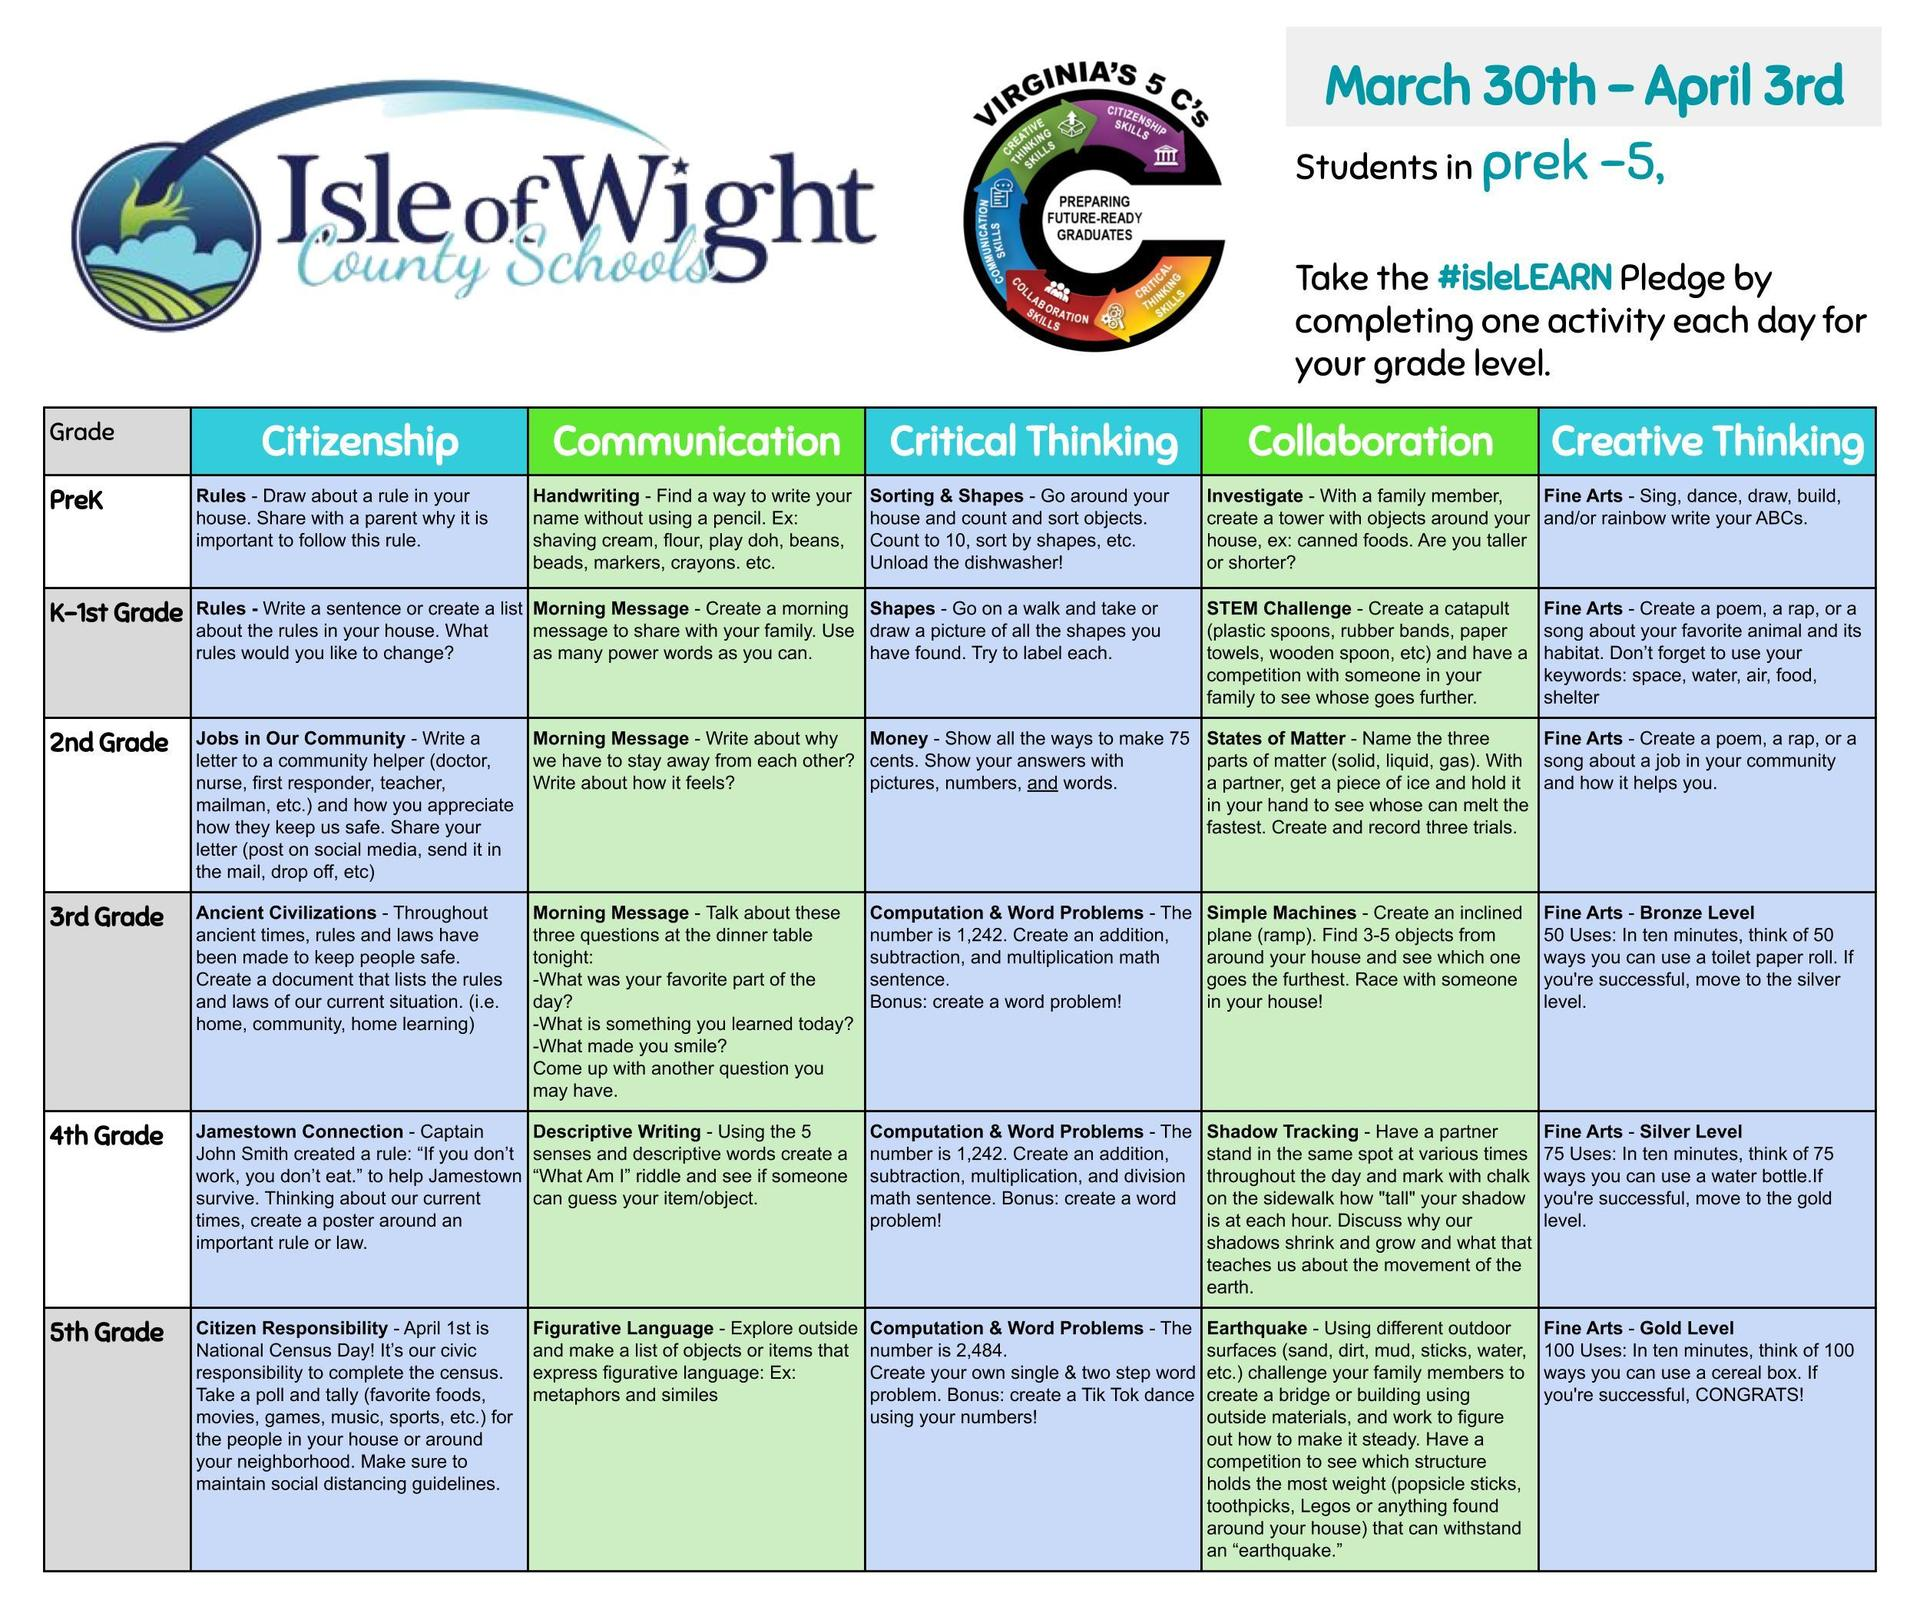 #isleLEARN Pledge with a variety of activities.  Students should choose one per week per grade level.